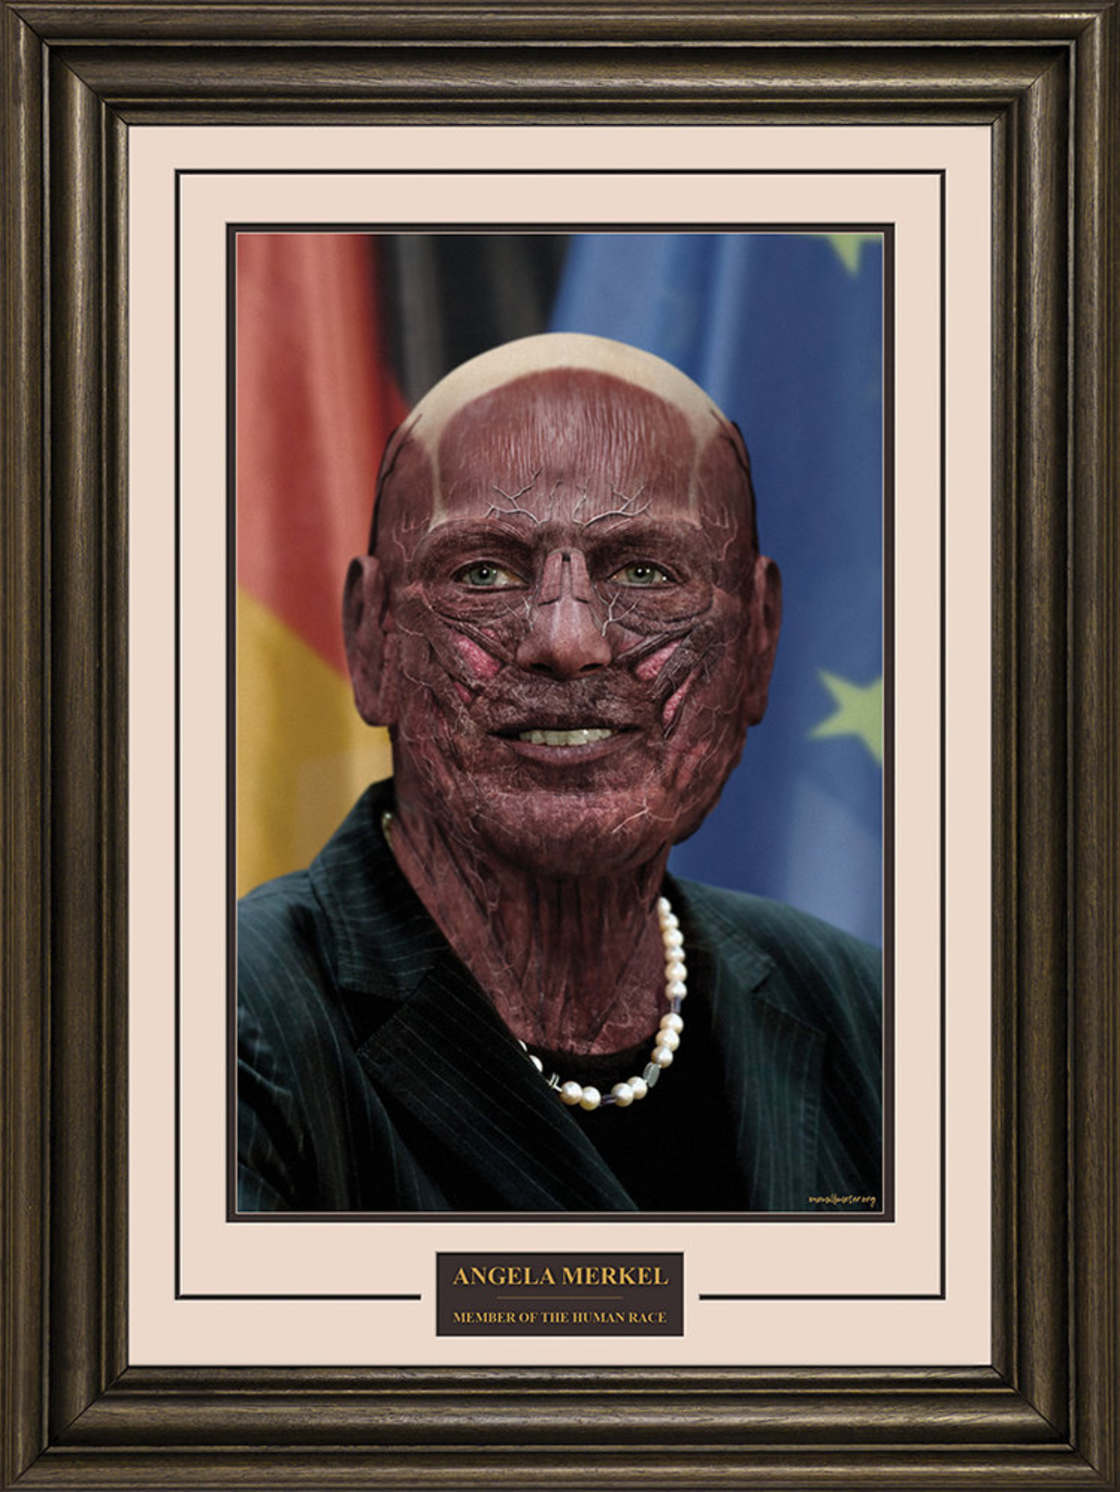 One Millimeter - When artists remove the skin of world leaders